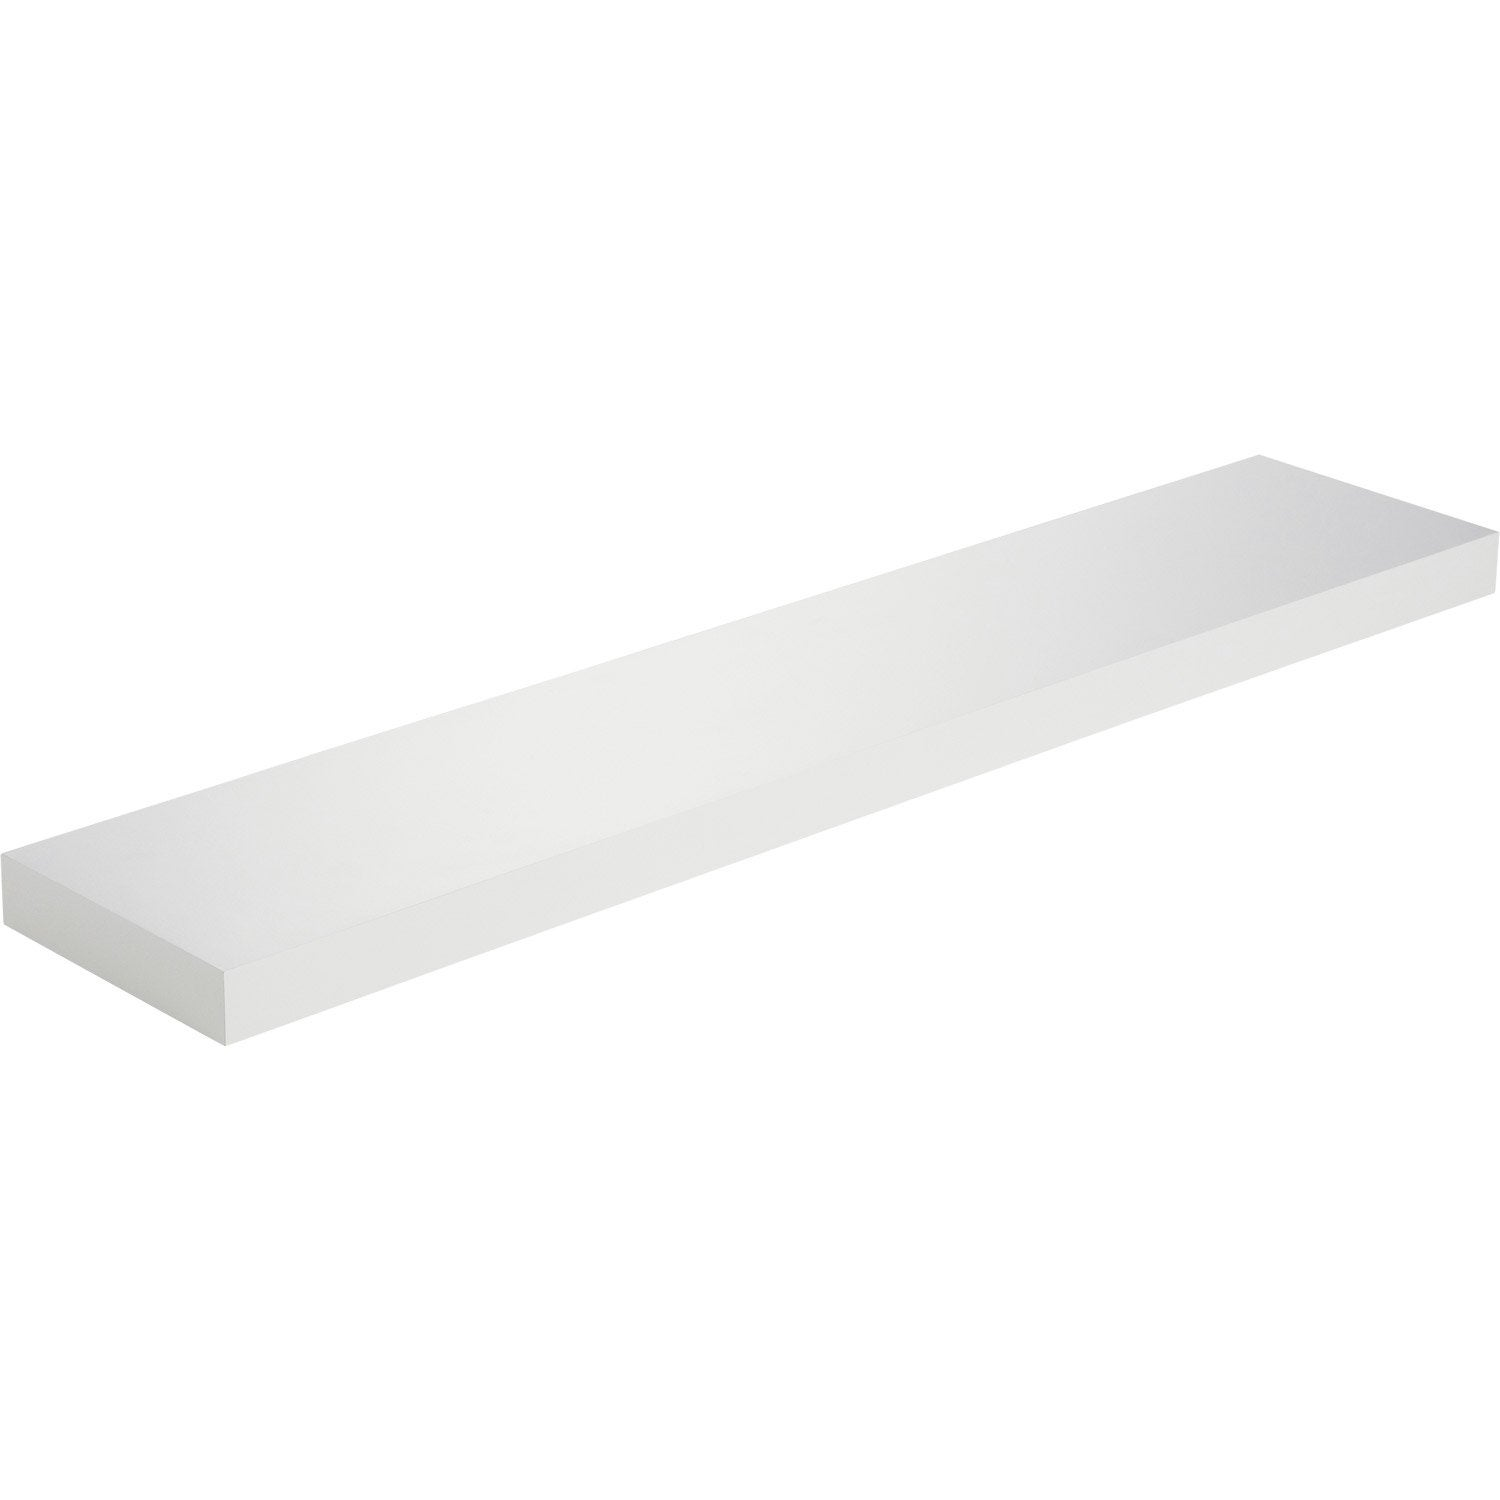 Etag re murale blanc spaceo x cm mm for Etagere murale salle de bain leroy merlin